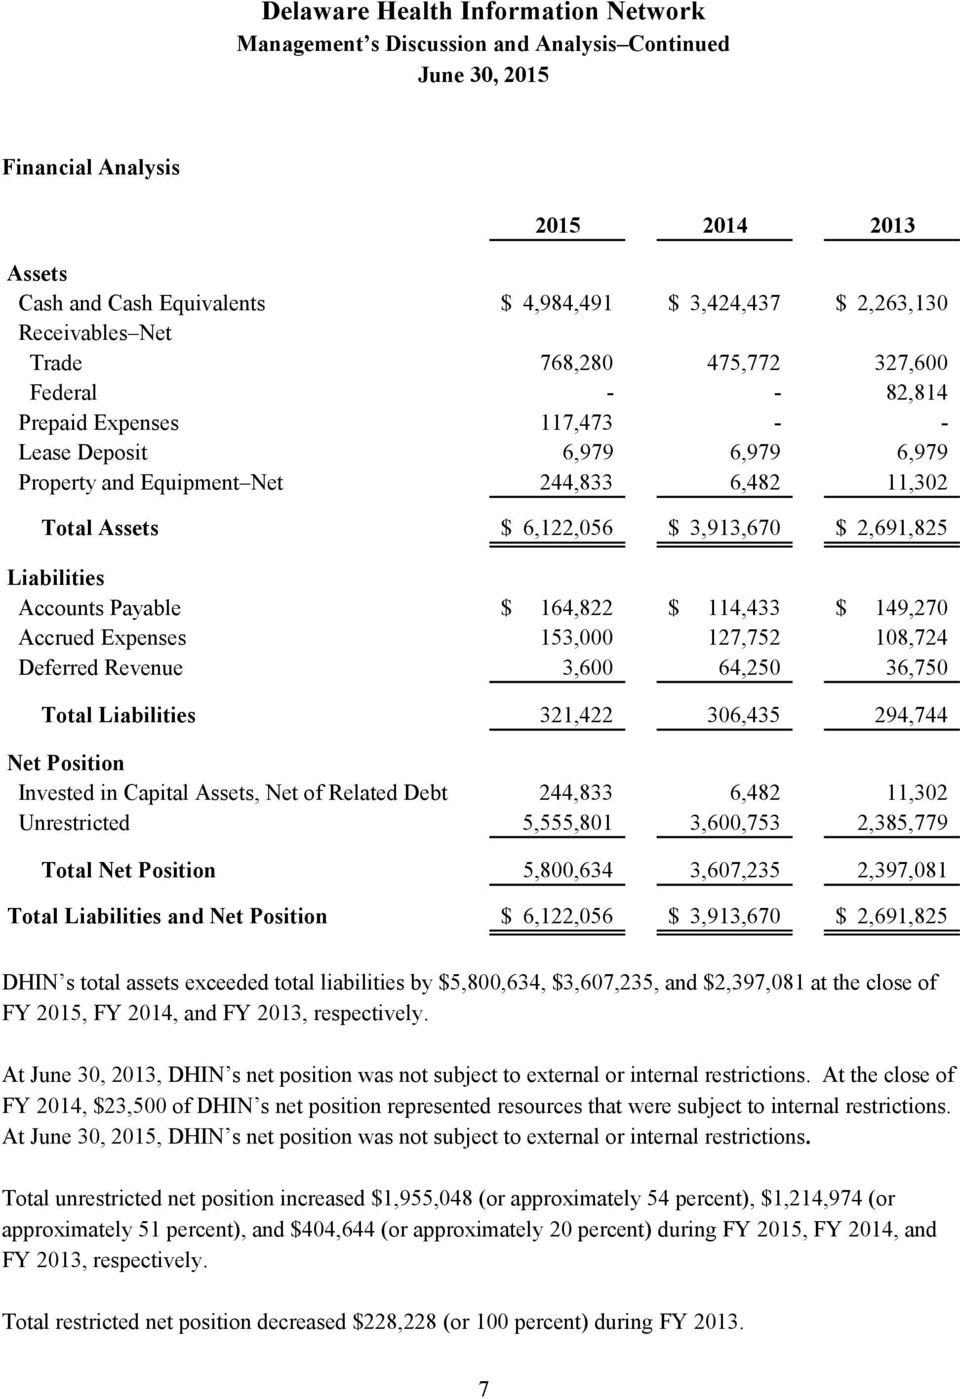 Liabilities and Net Position 2015 2014 2013 $ 4,984,491 $ 3,424,437 $ 2,263,130 768,280 117,473 6,979 244,833 475,772 6,979 6,482 327,600 82,814 6,979 11,302 $ 6,122,056 $ 3,913,670 $ 2,691,825 $ $ $